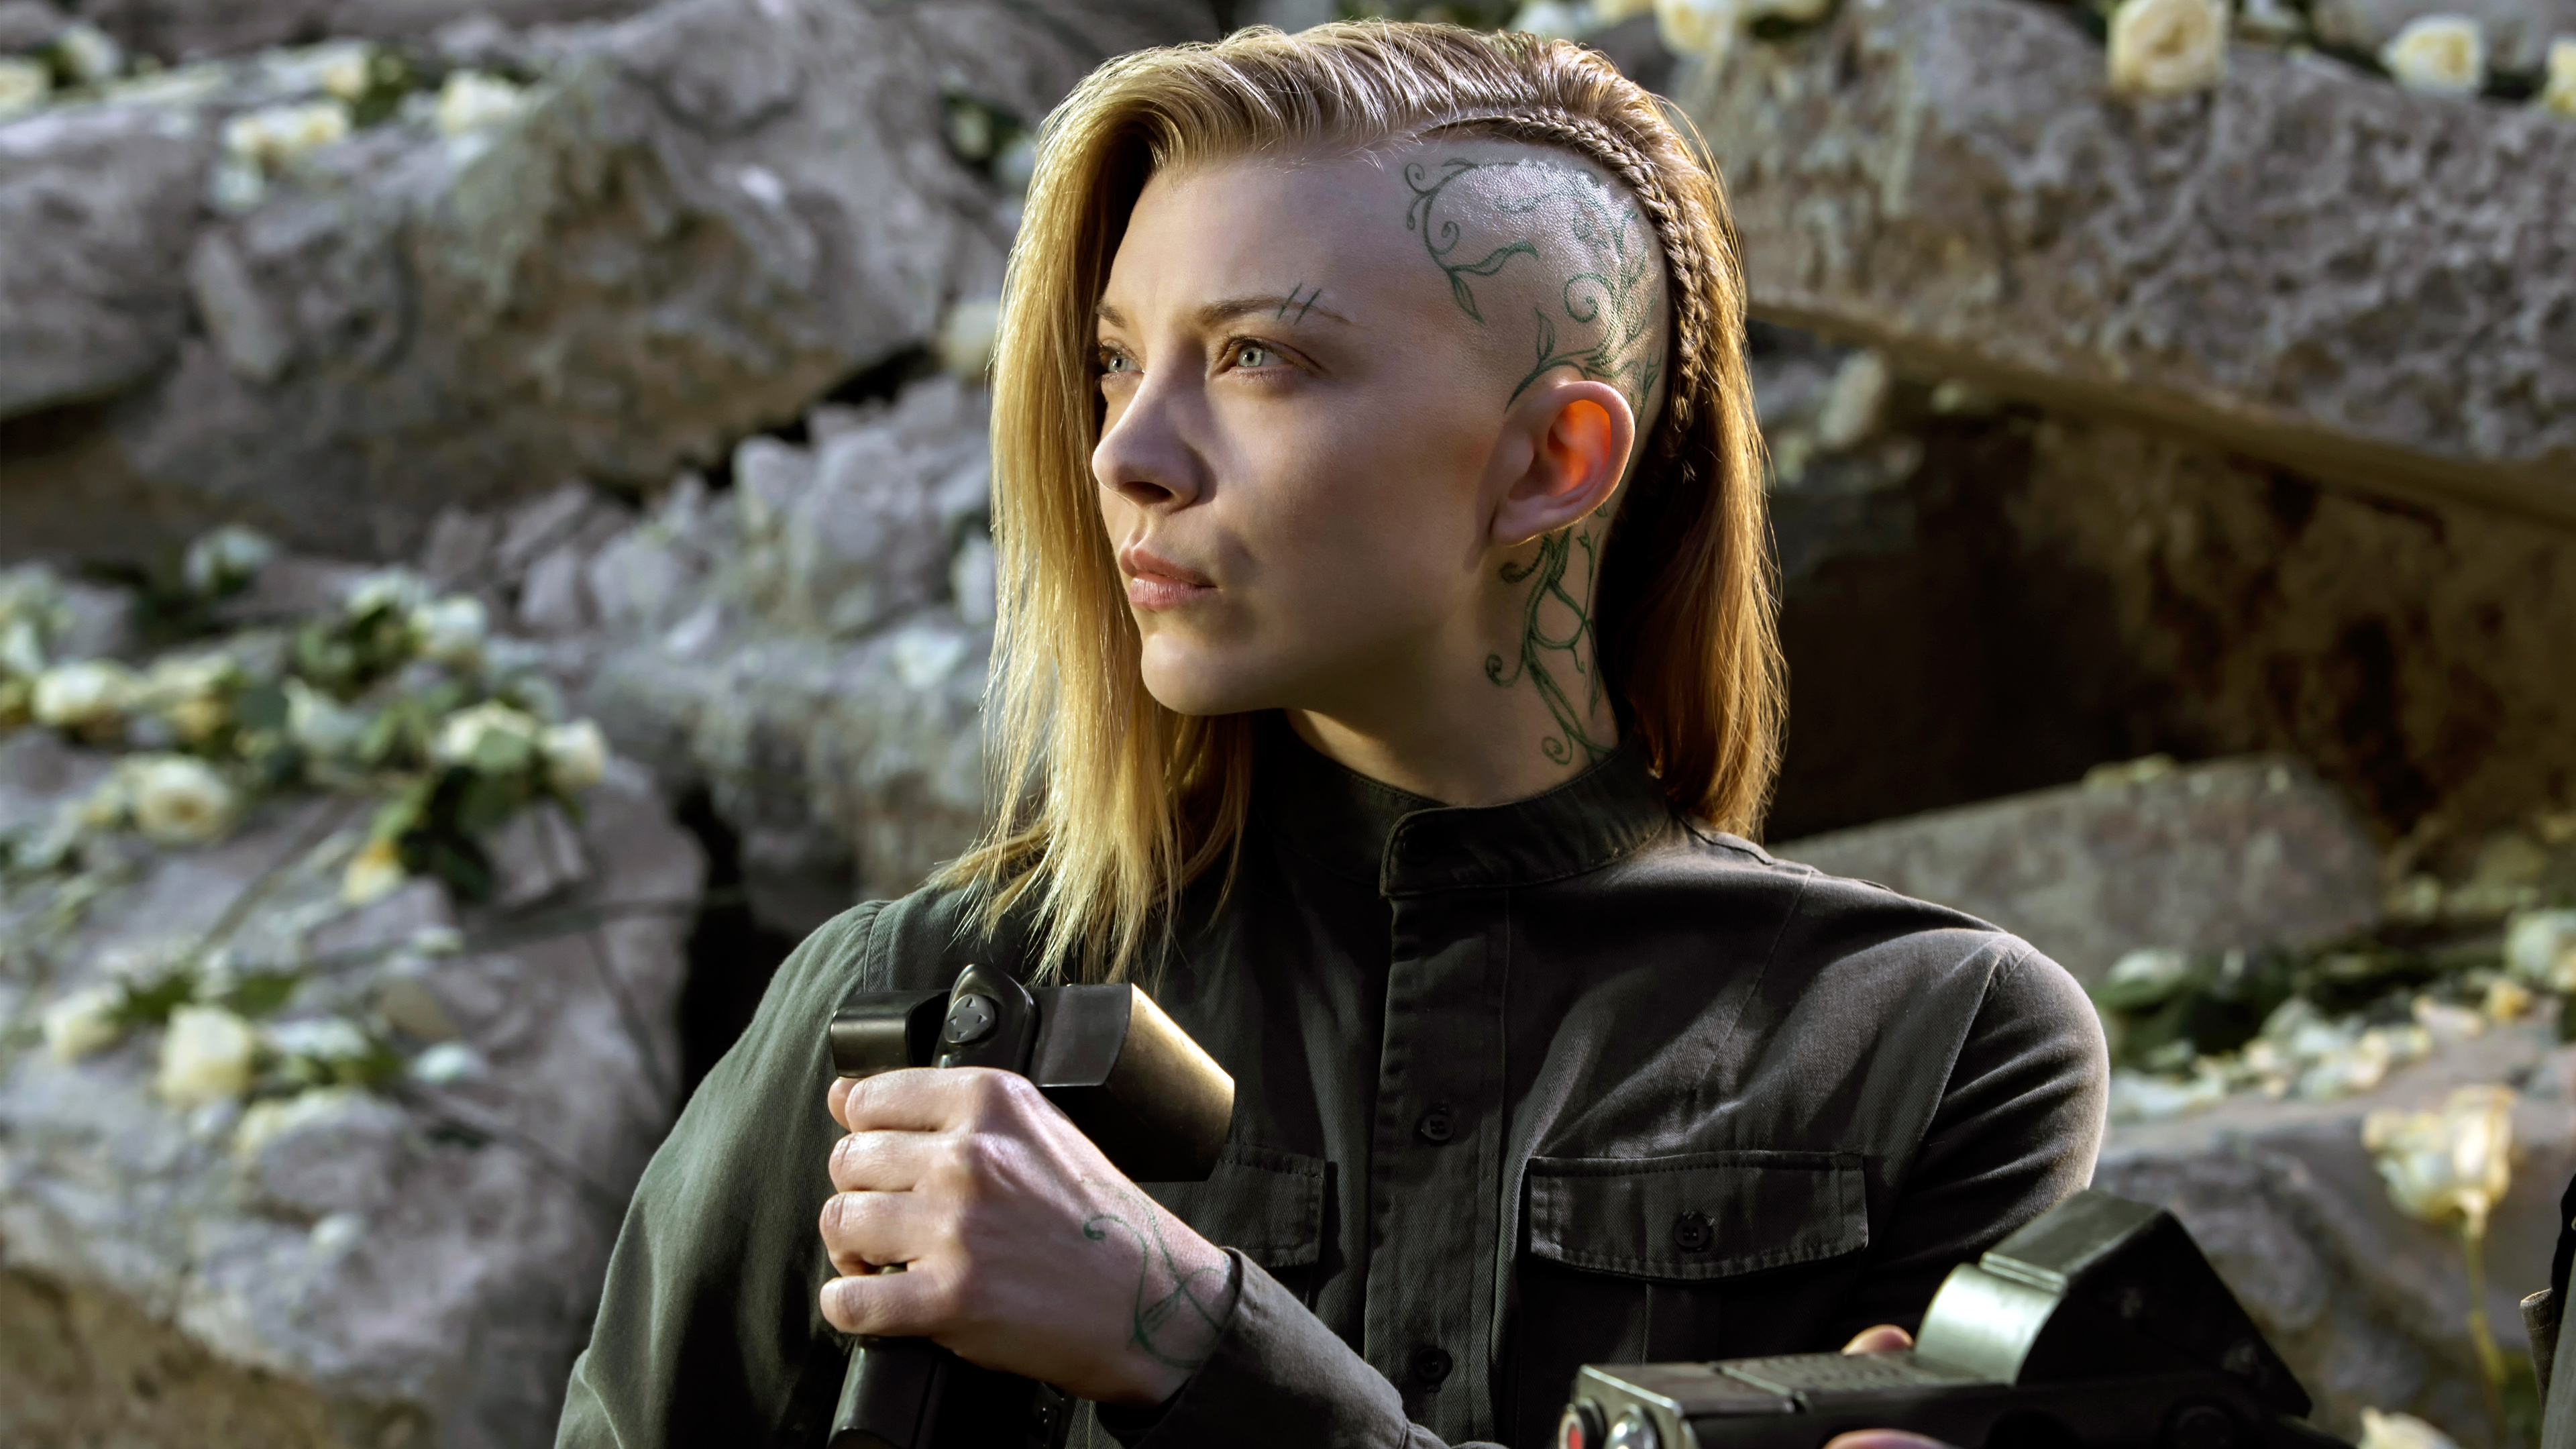 cressida_natalie_dormer_hunger_games_mockingjay_part_2-hd.jpg